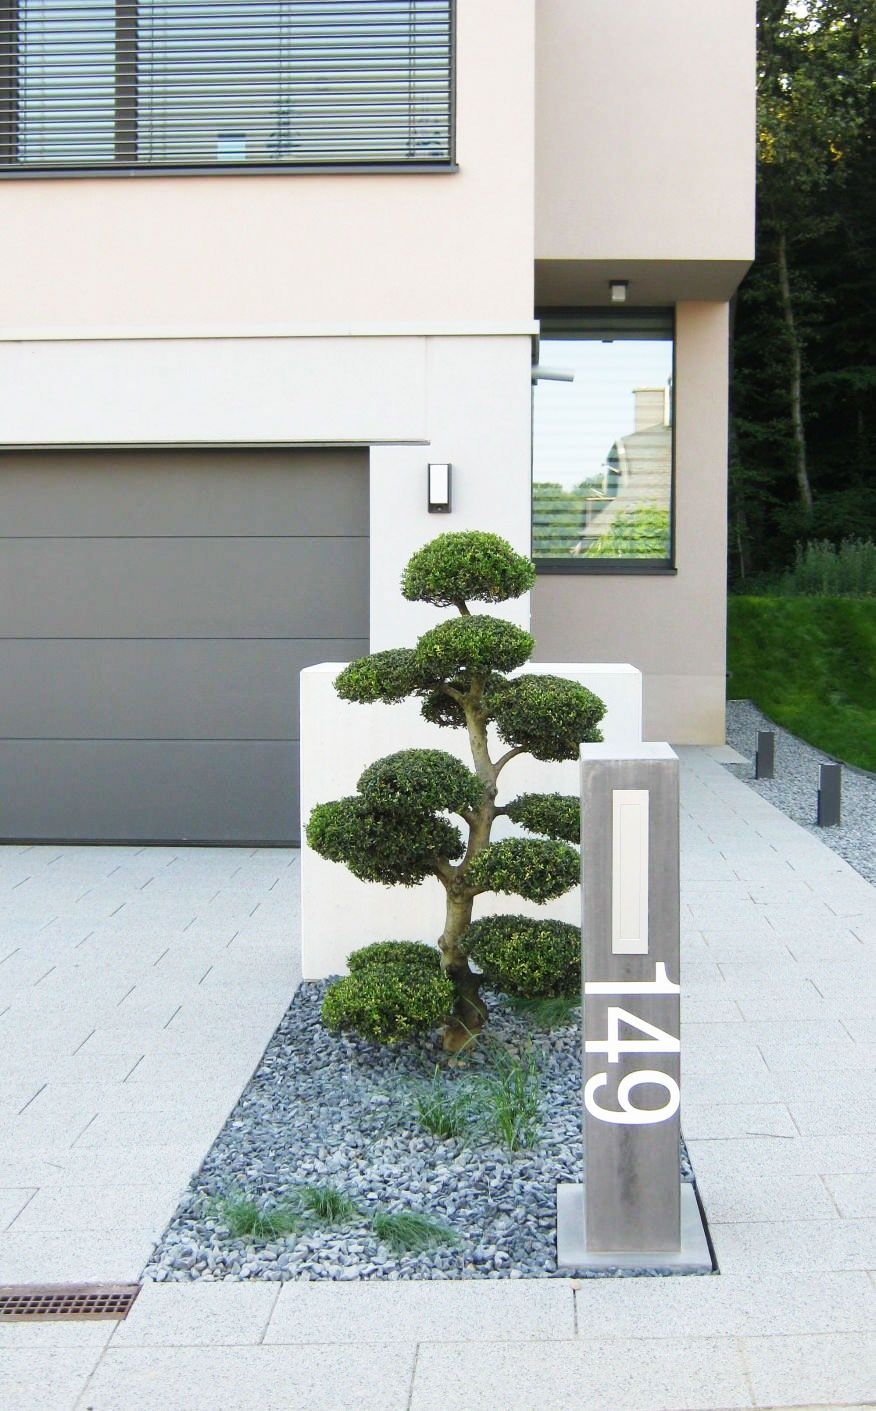 Amenagement entr e bonsa jardin et for t for Amenagement jardin entree maison